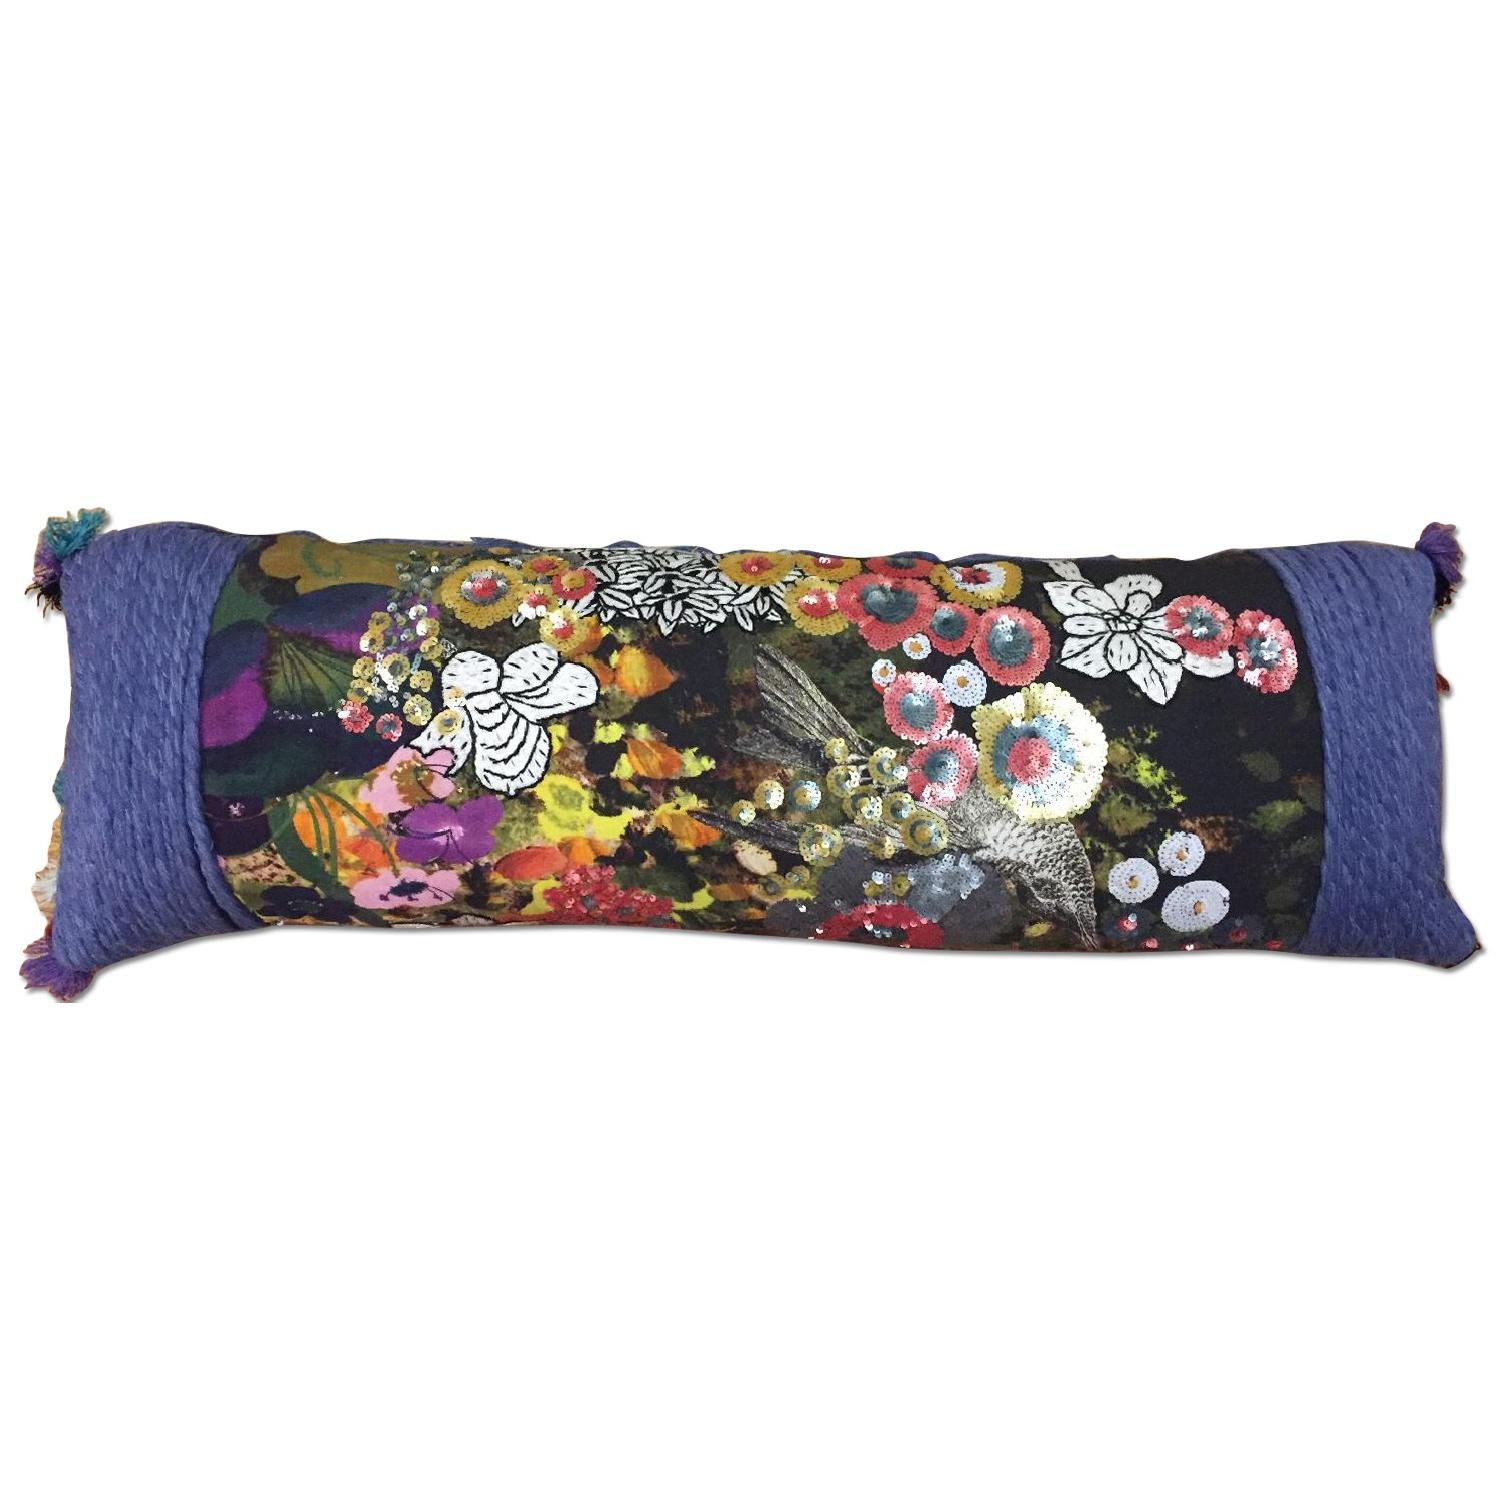 Anthropologie Sequin Pillow - image-0